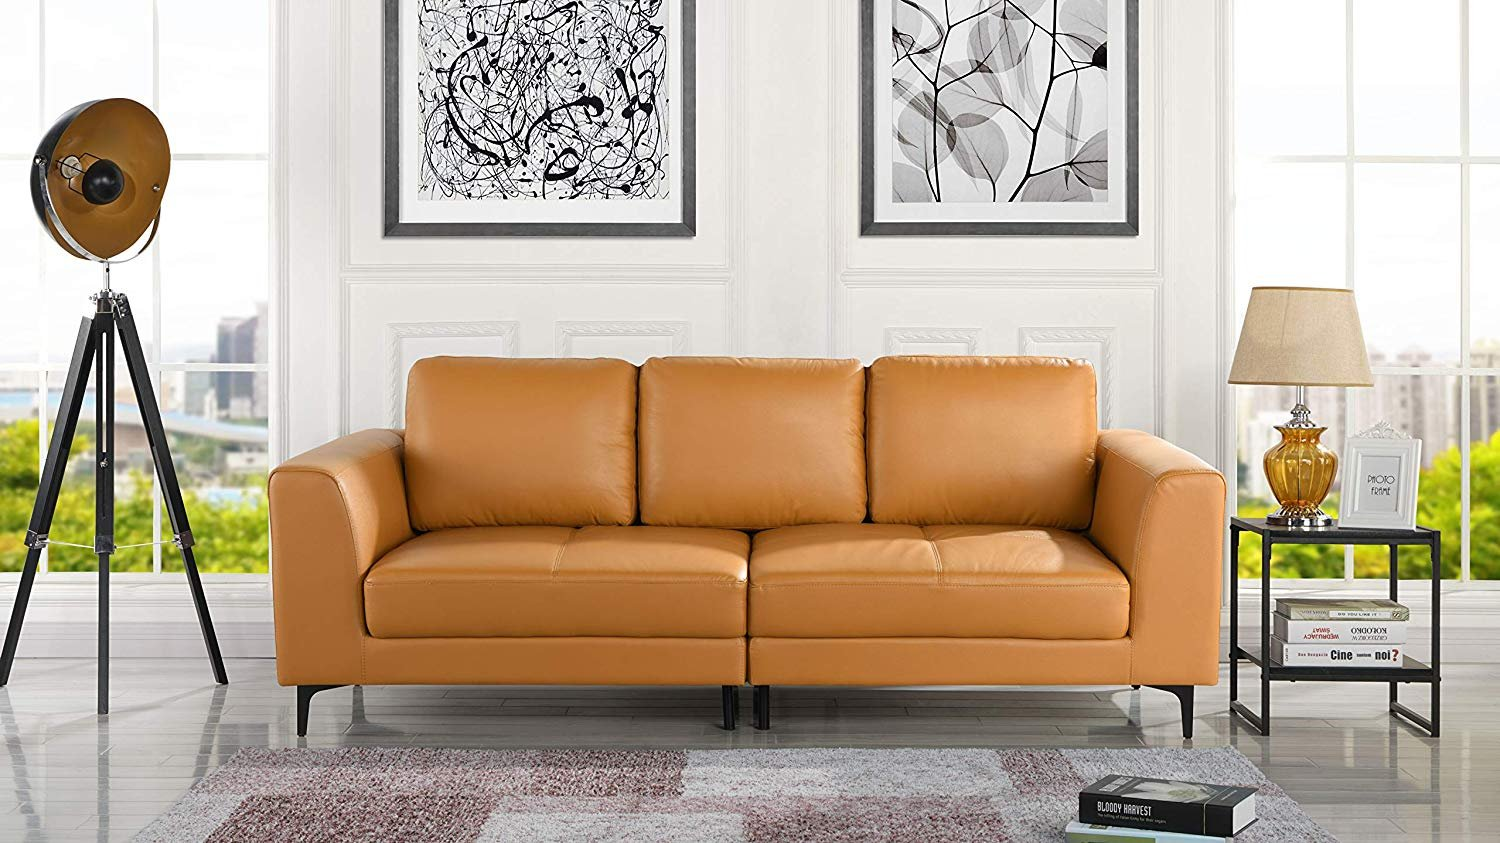 Details About Mid Century Modern Leather Fabric 3 Seat Sofa Couch 81 1 W Inches Light Brown